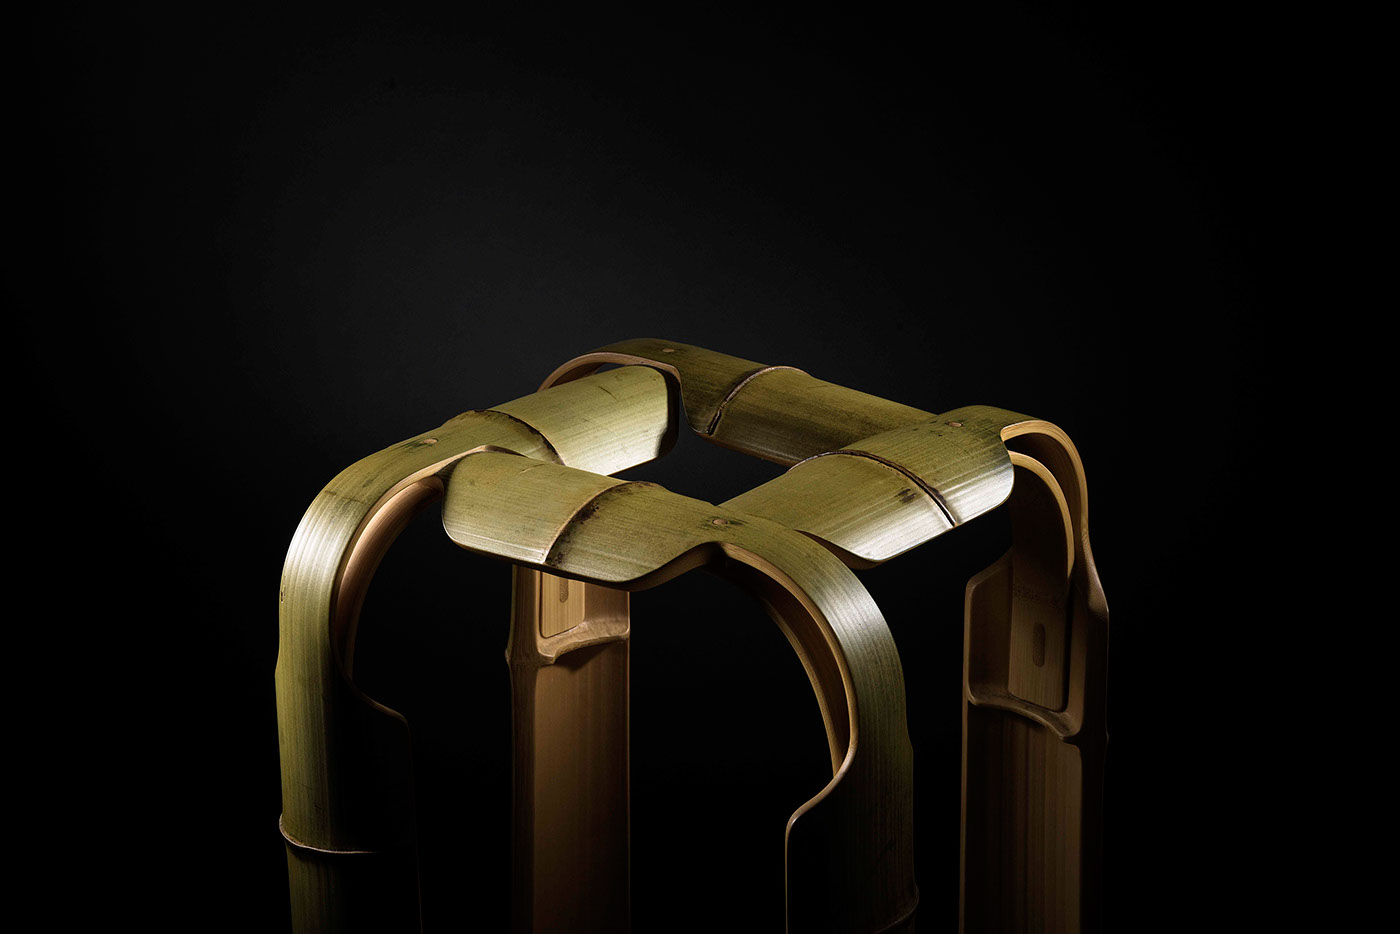 bamboo stool chair taiwan Moso structure furniture texture Form craft